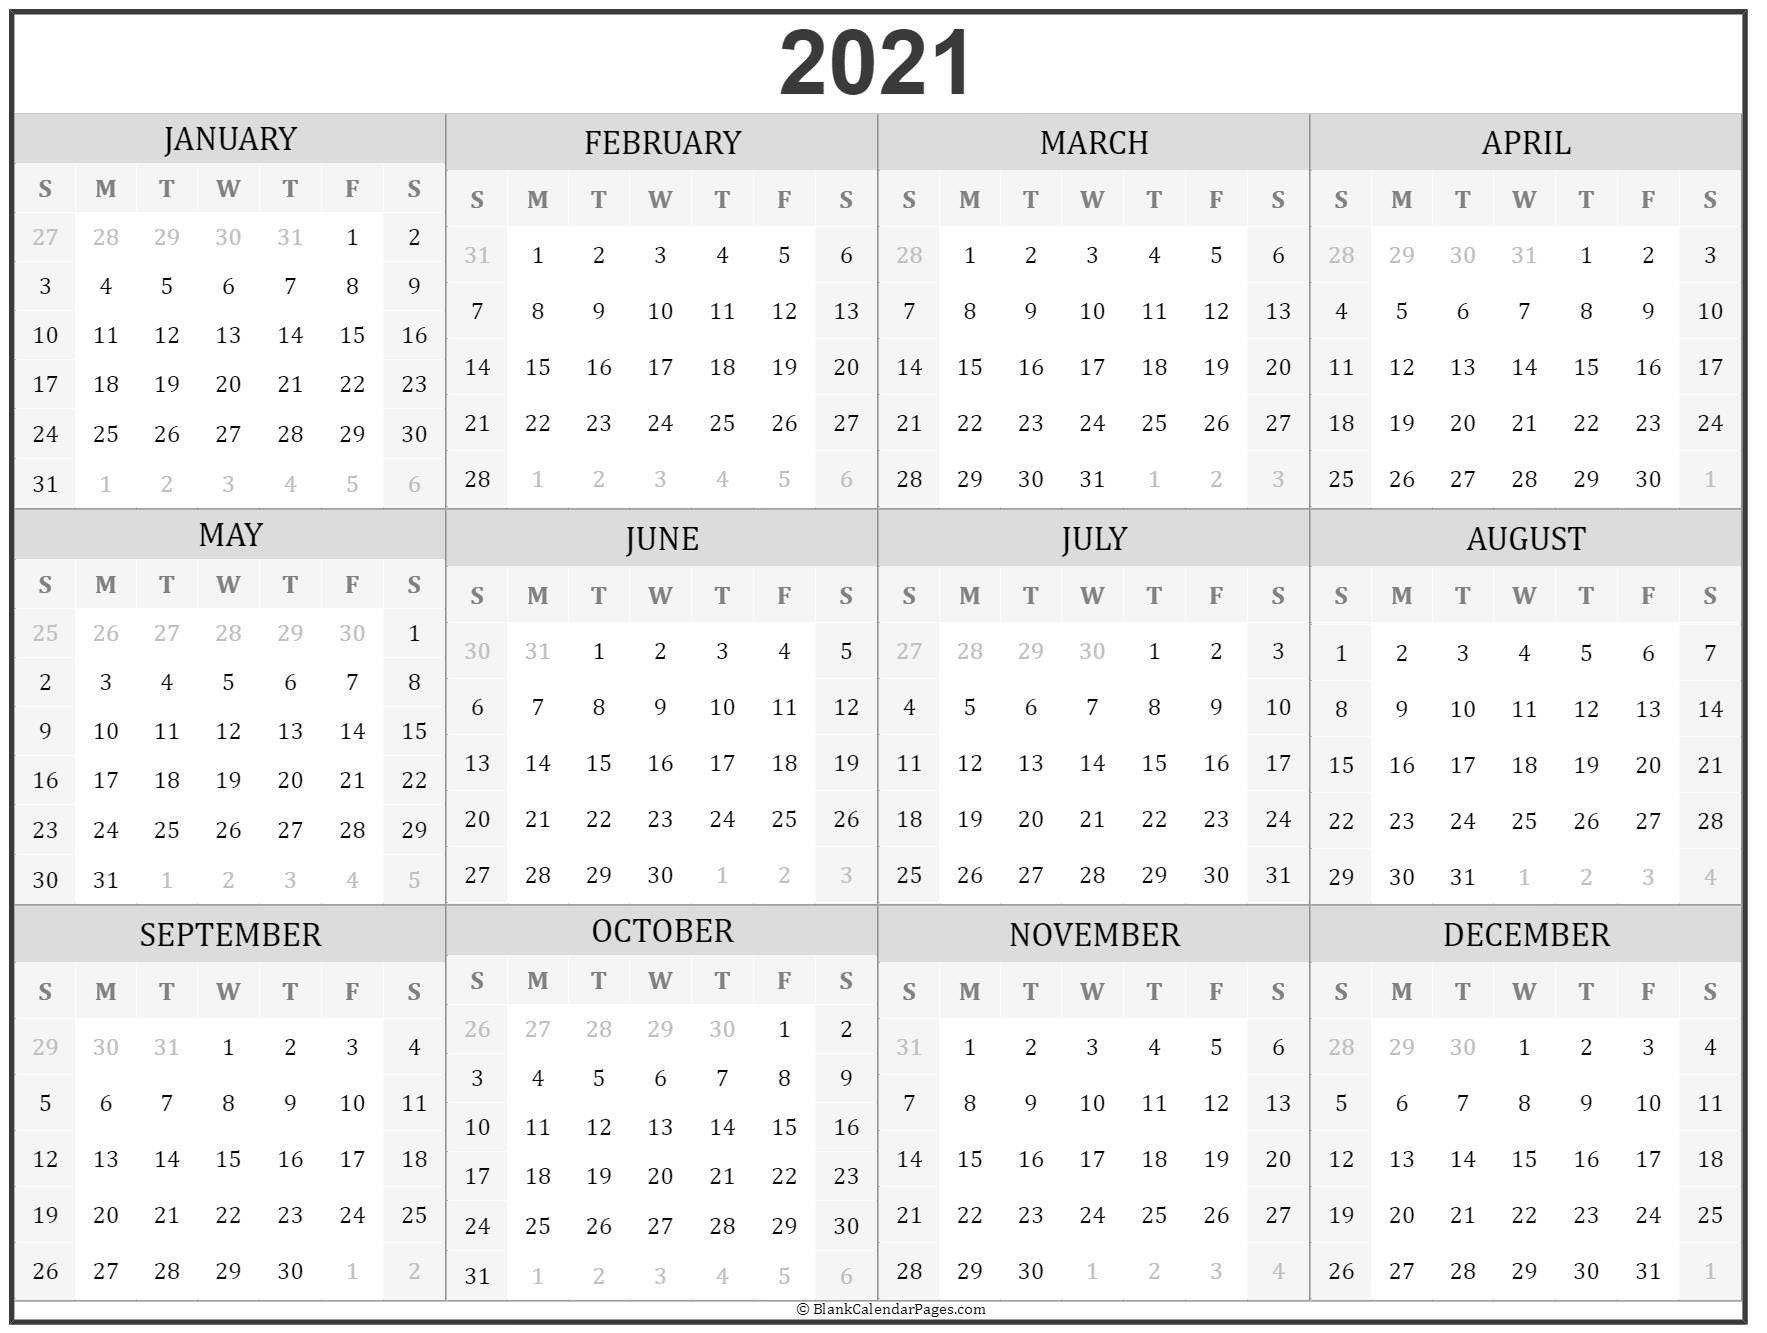 2021 Year Calendar 2021 Year Calendar 2021 Year Calendar for Fill In Yearly Calendar 2021